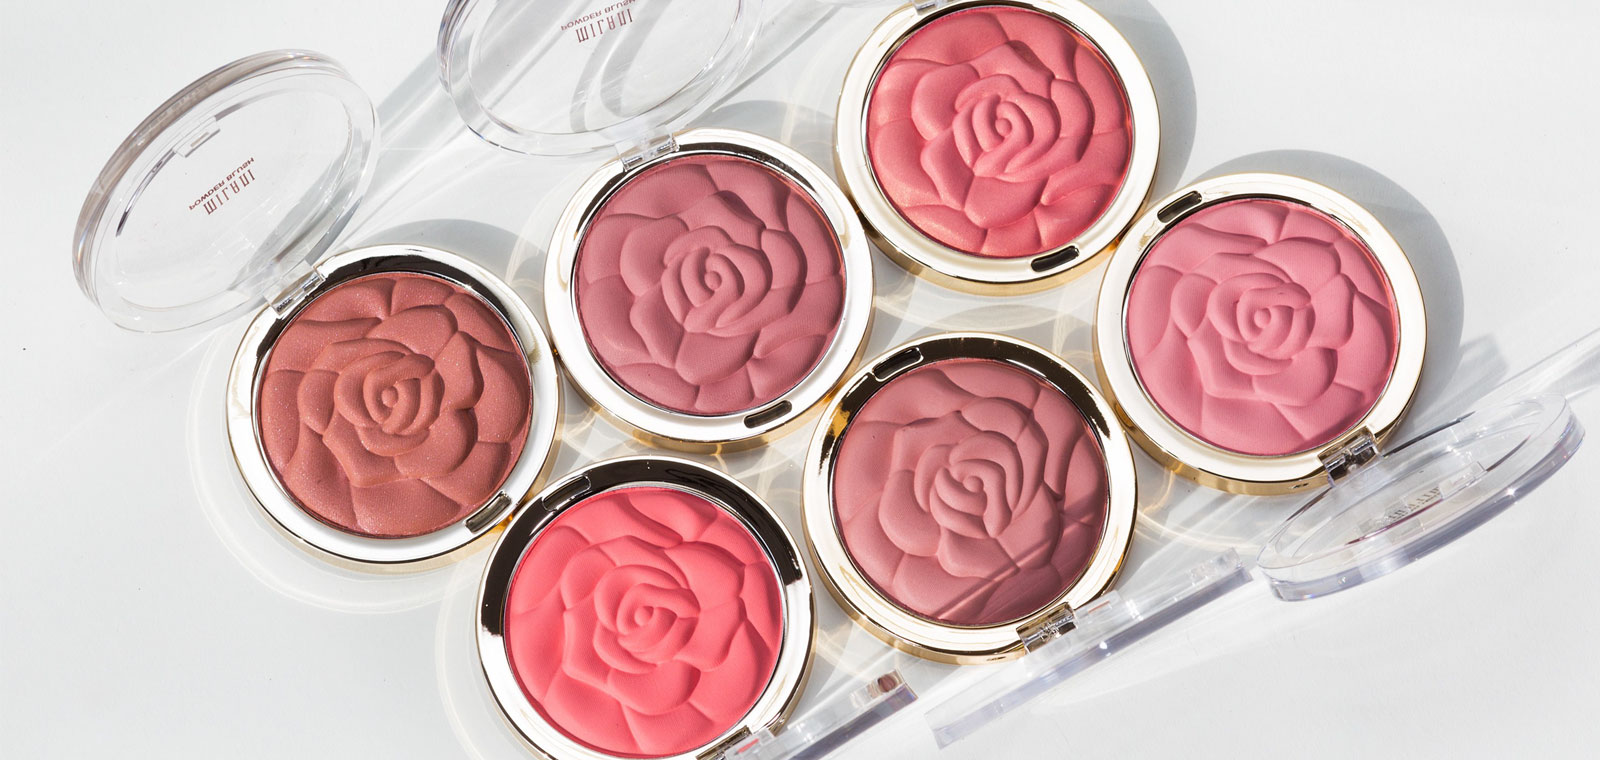 blush milani rose